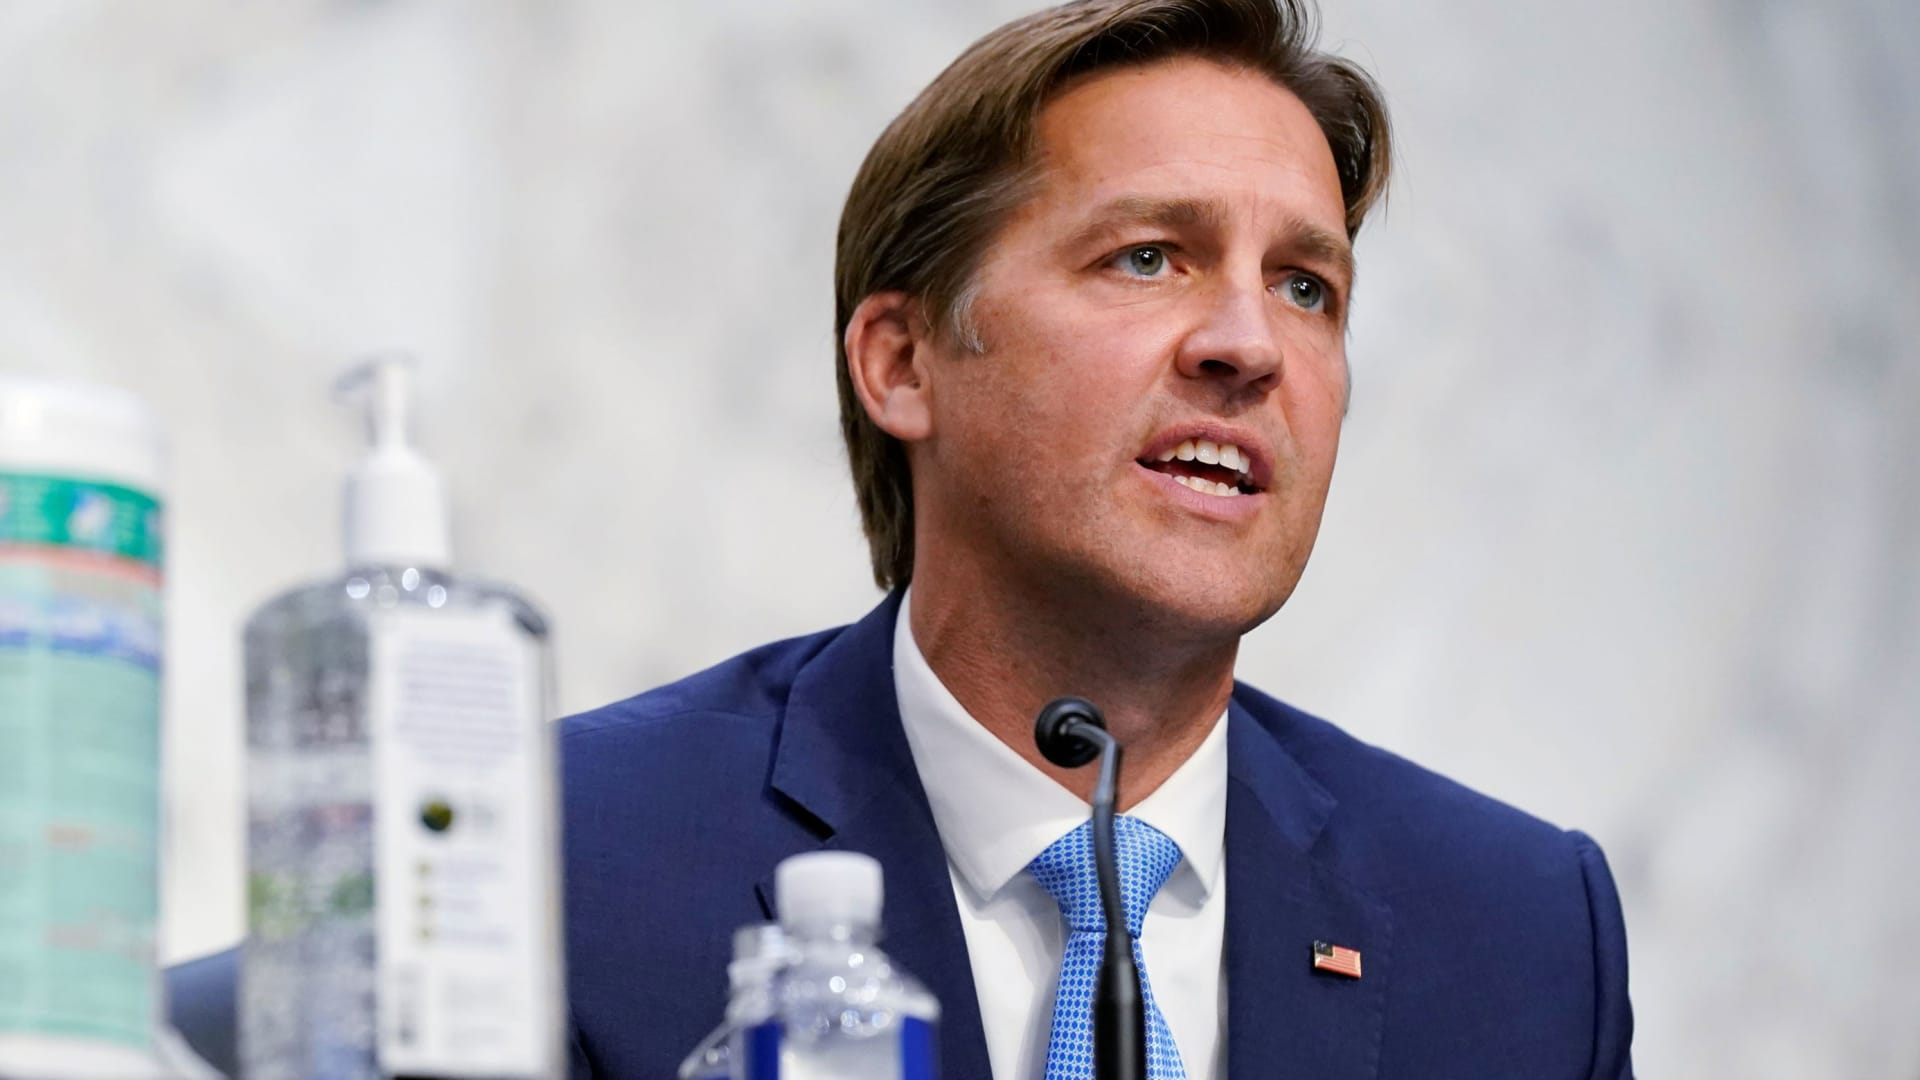 U.S. Senator Ben Sasse (R-NE) speaks during the U.S. Supreme Court nominee Judge Amy Coney Barrett's confirmation hearing before the Senate Judiciary Committee on Capitol Hill in Washington, D.C., October 13, 2020.